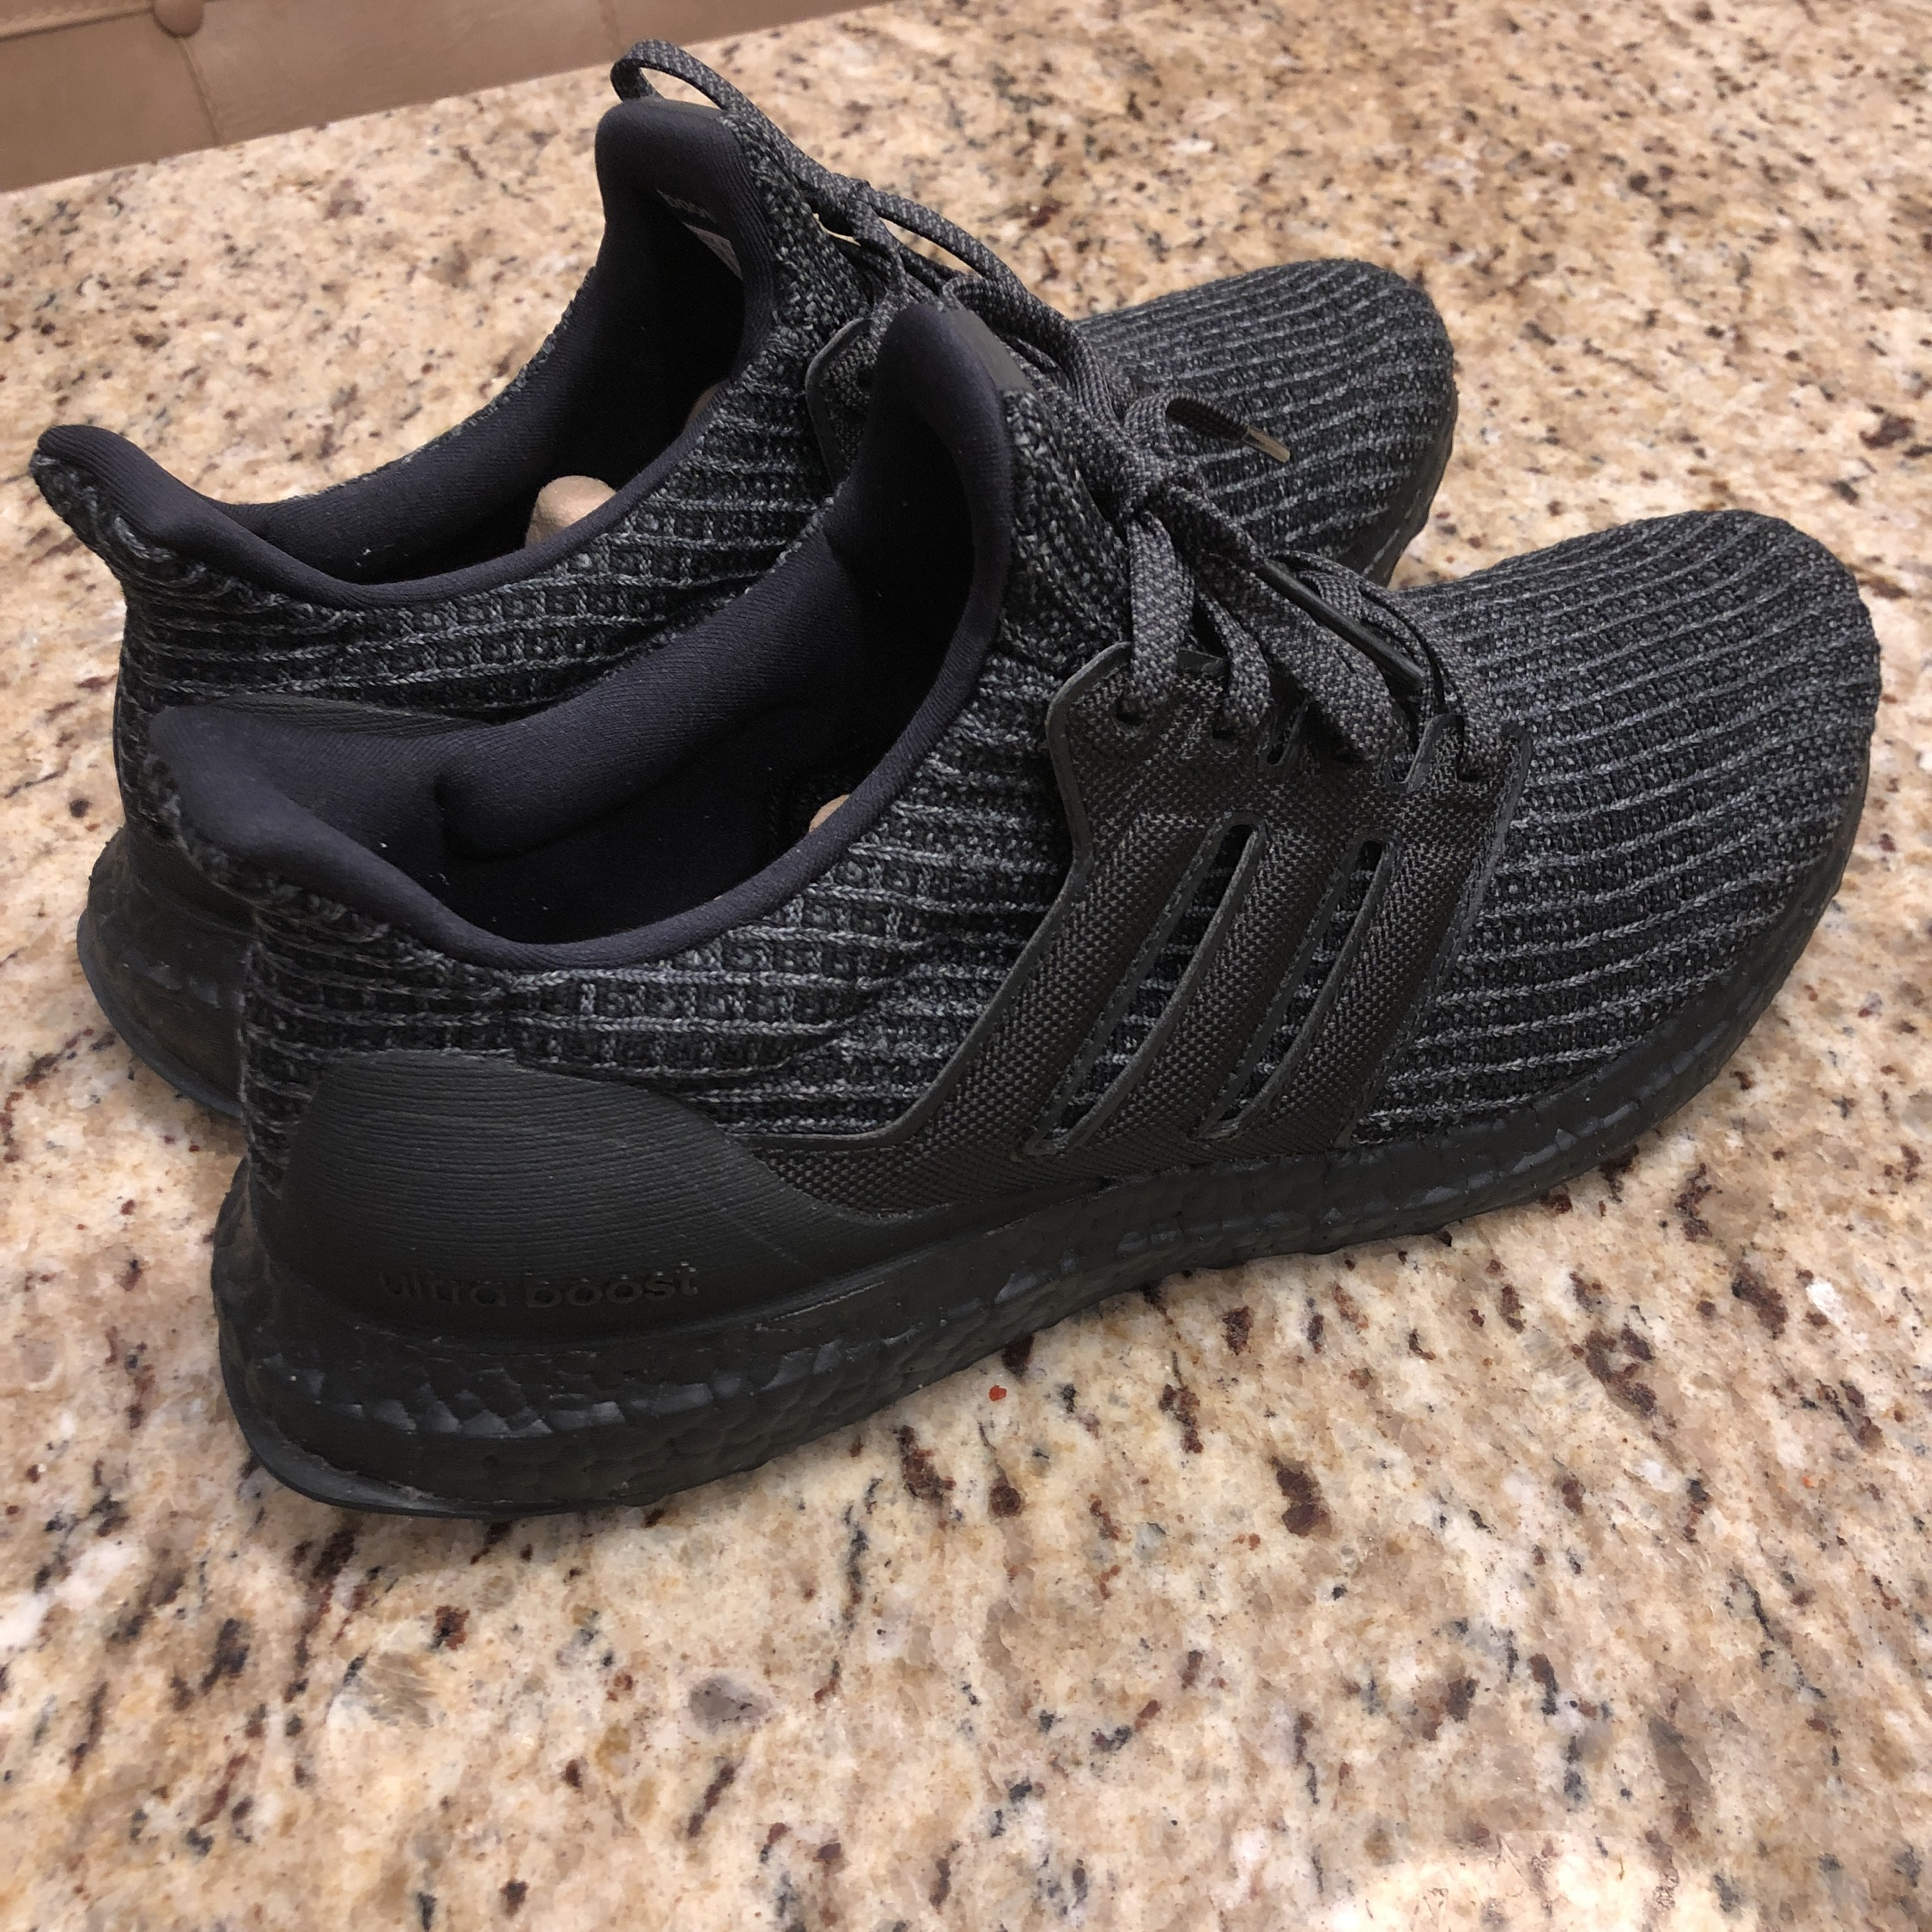 online retailer 2f0c4 23541 Adidas Ultra Boost 4.0 Triple Black